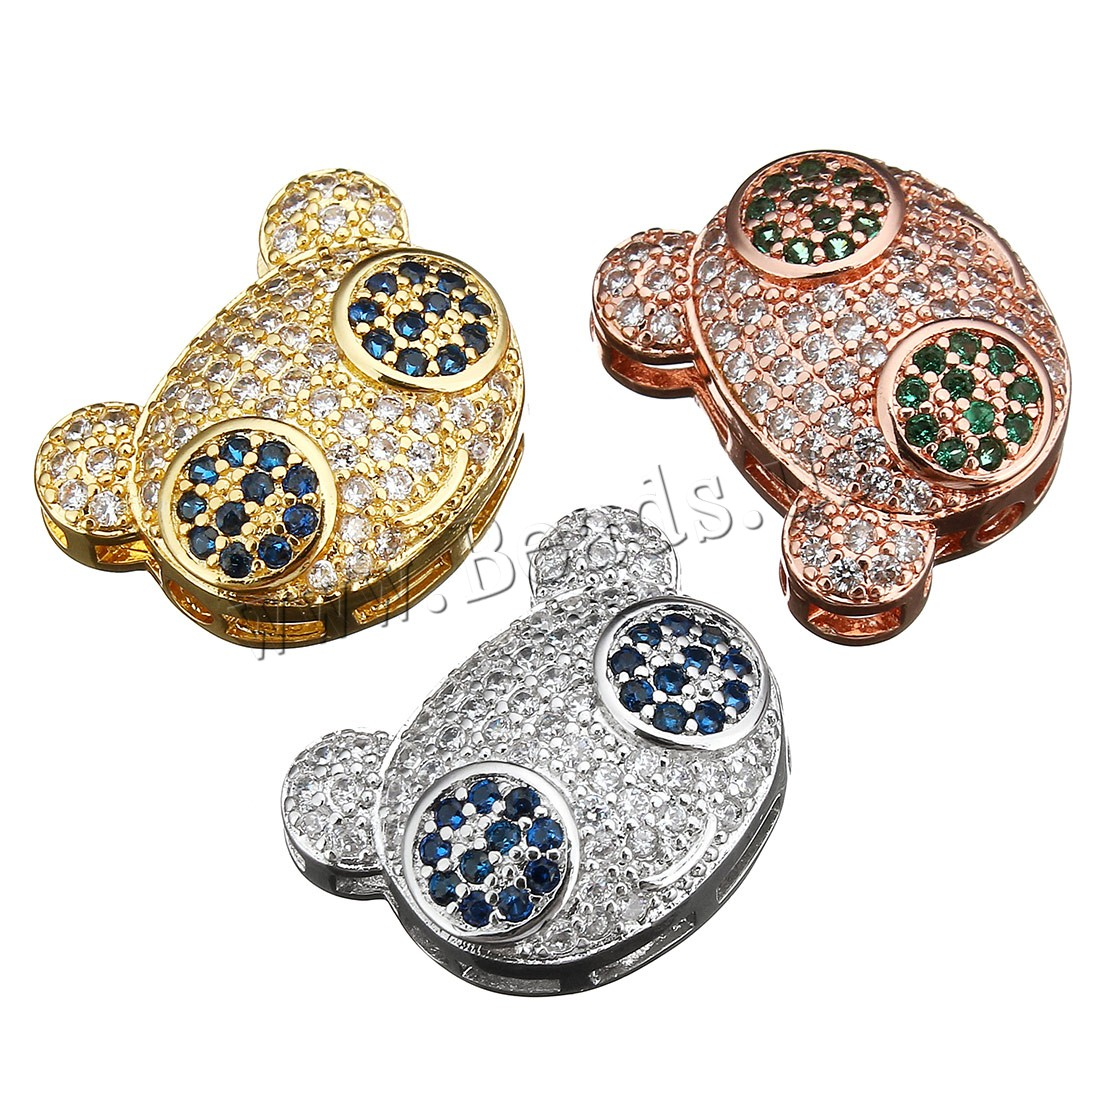 Buy Cubic Zirconia Micro Pave Brass Beads Panda plated multihole & micro pave cubic zirconia colors choice 16x13x5.50mm Hole:Approx 1.5mm 2 Sold Lot